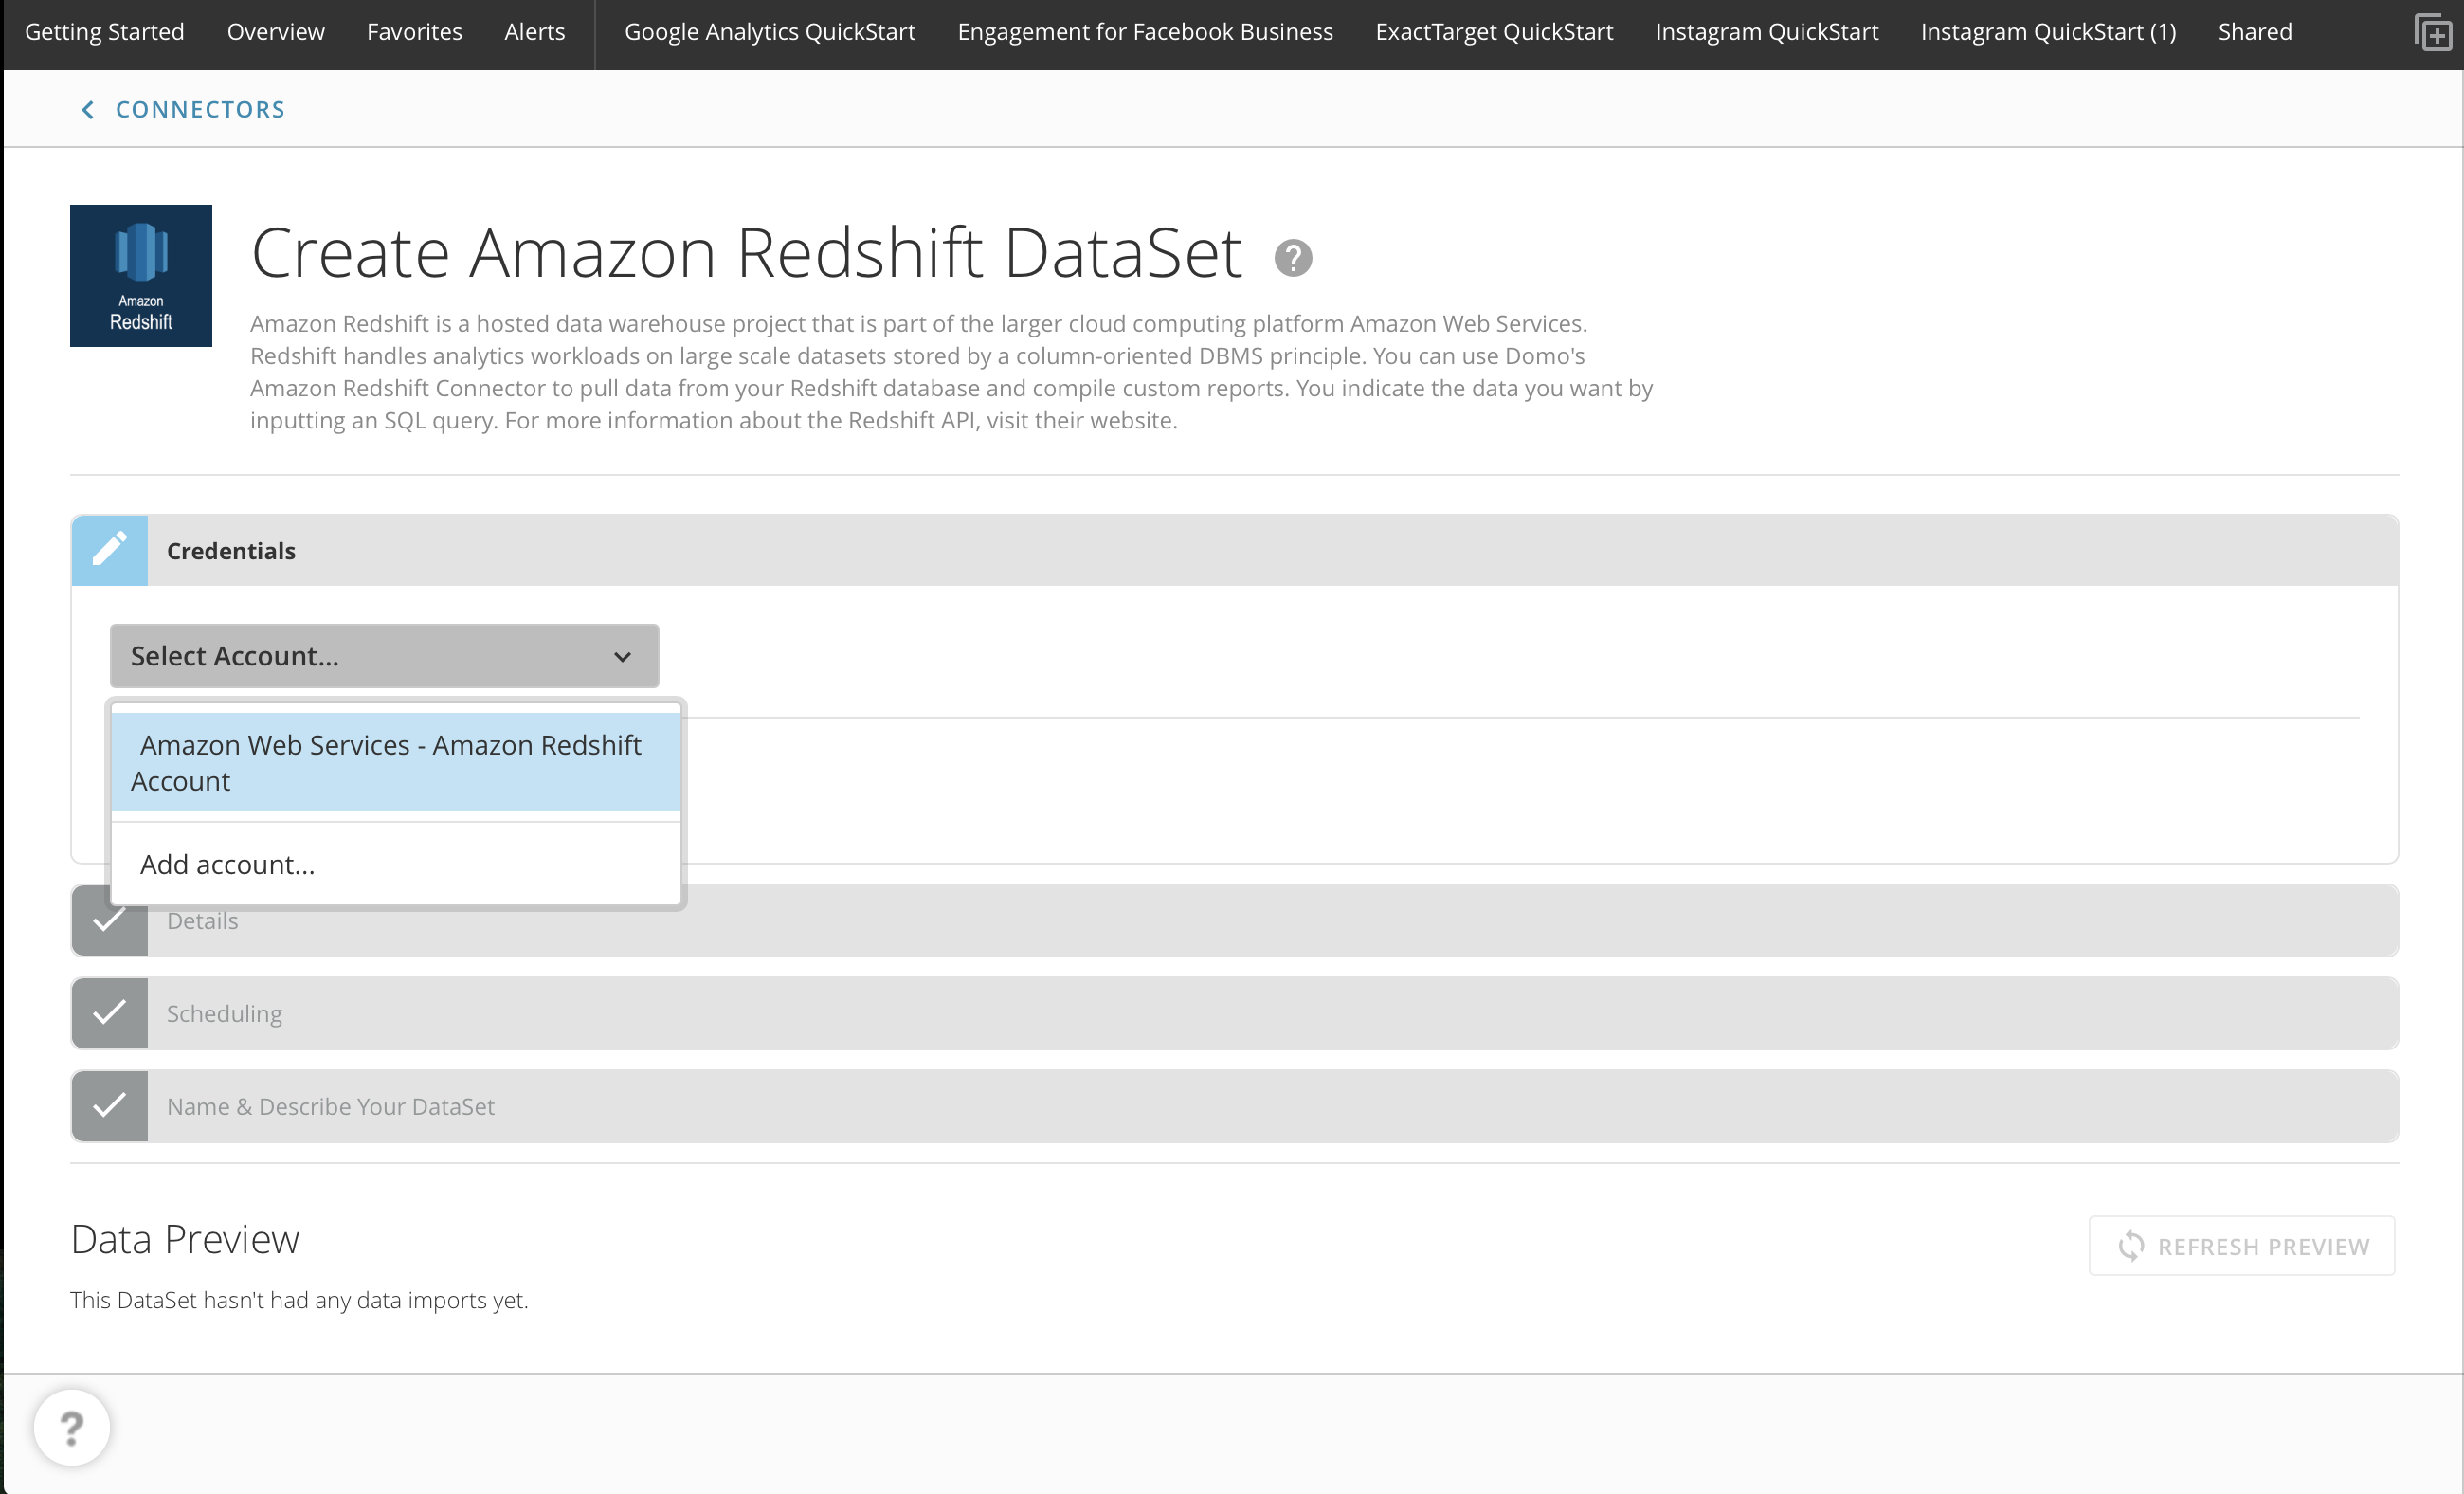 Getting The Most Out Of Domo: How To Make An Amazon Redshift